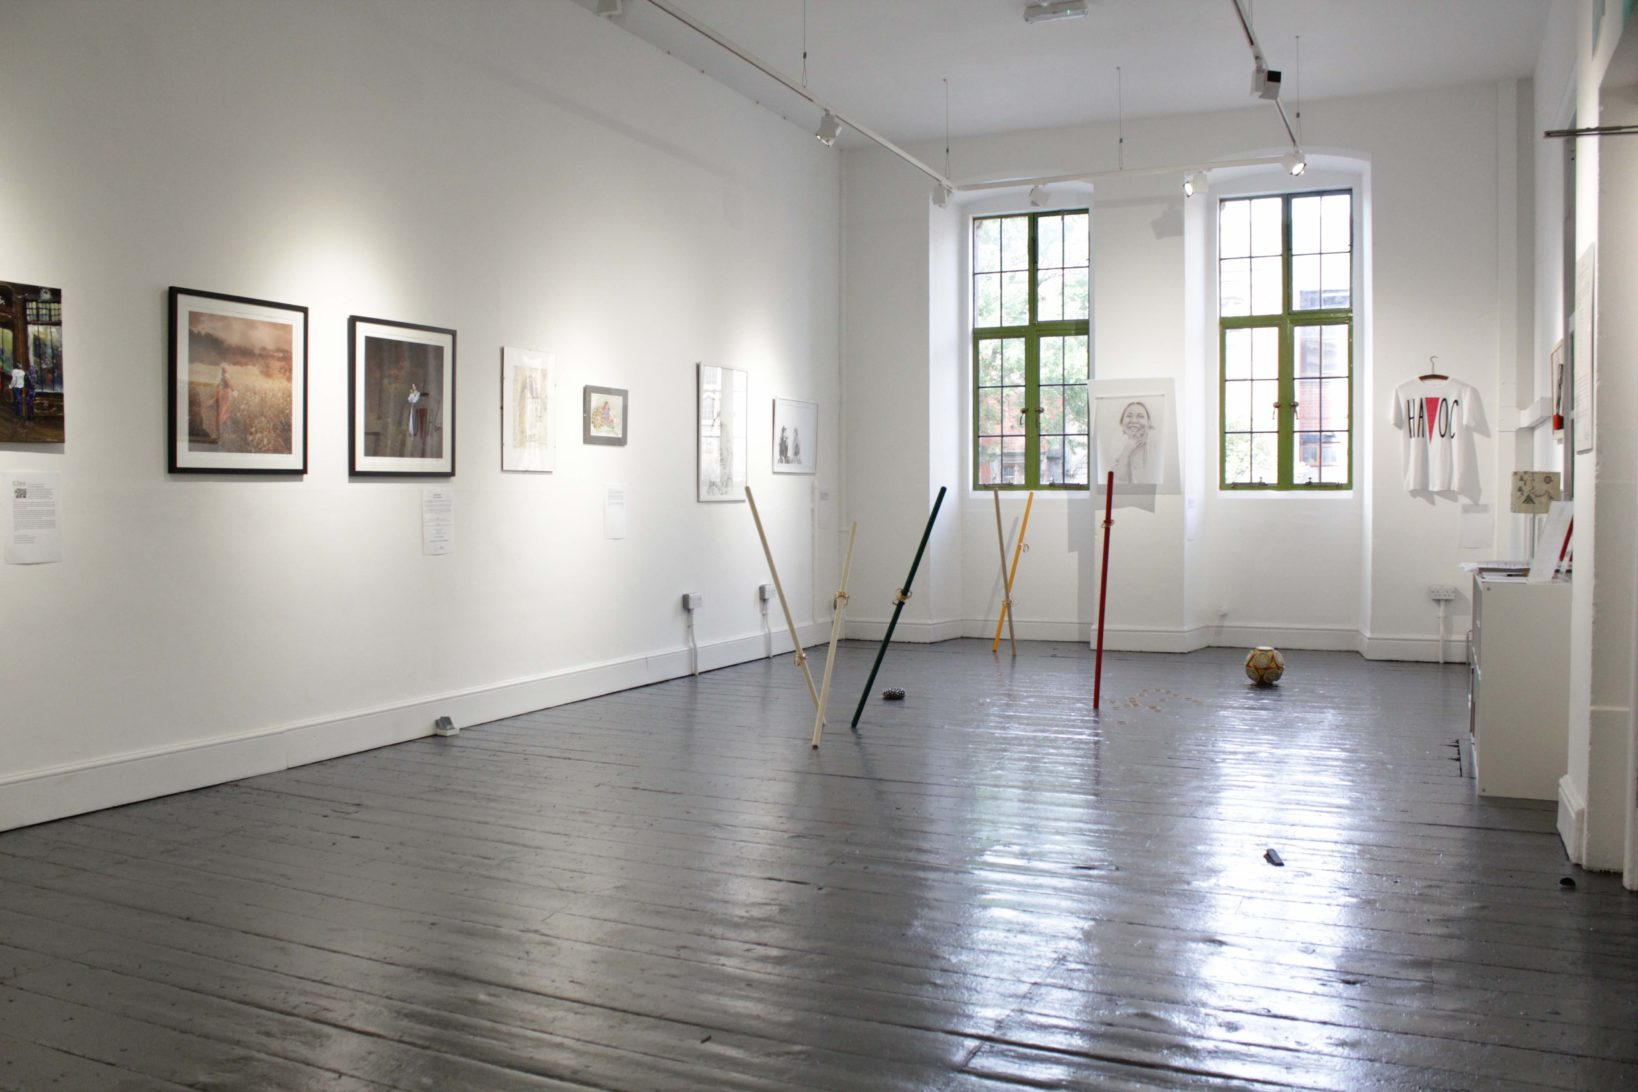 An image of the members show 2019 on show at Ort Gallery in August and September 2019. You can make you several art works on the walls such as photographs, drawings and prints. There is also a floor based installation by Hira Butt where wooden sticks are sticking out of the floor and bangles are lying on the floor.